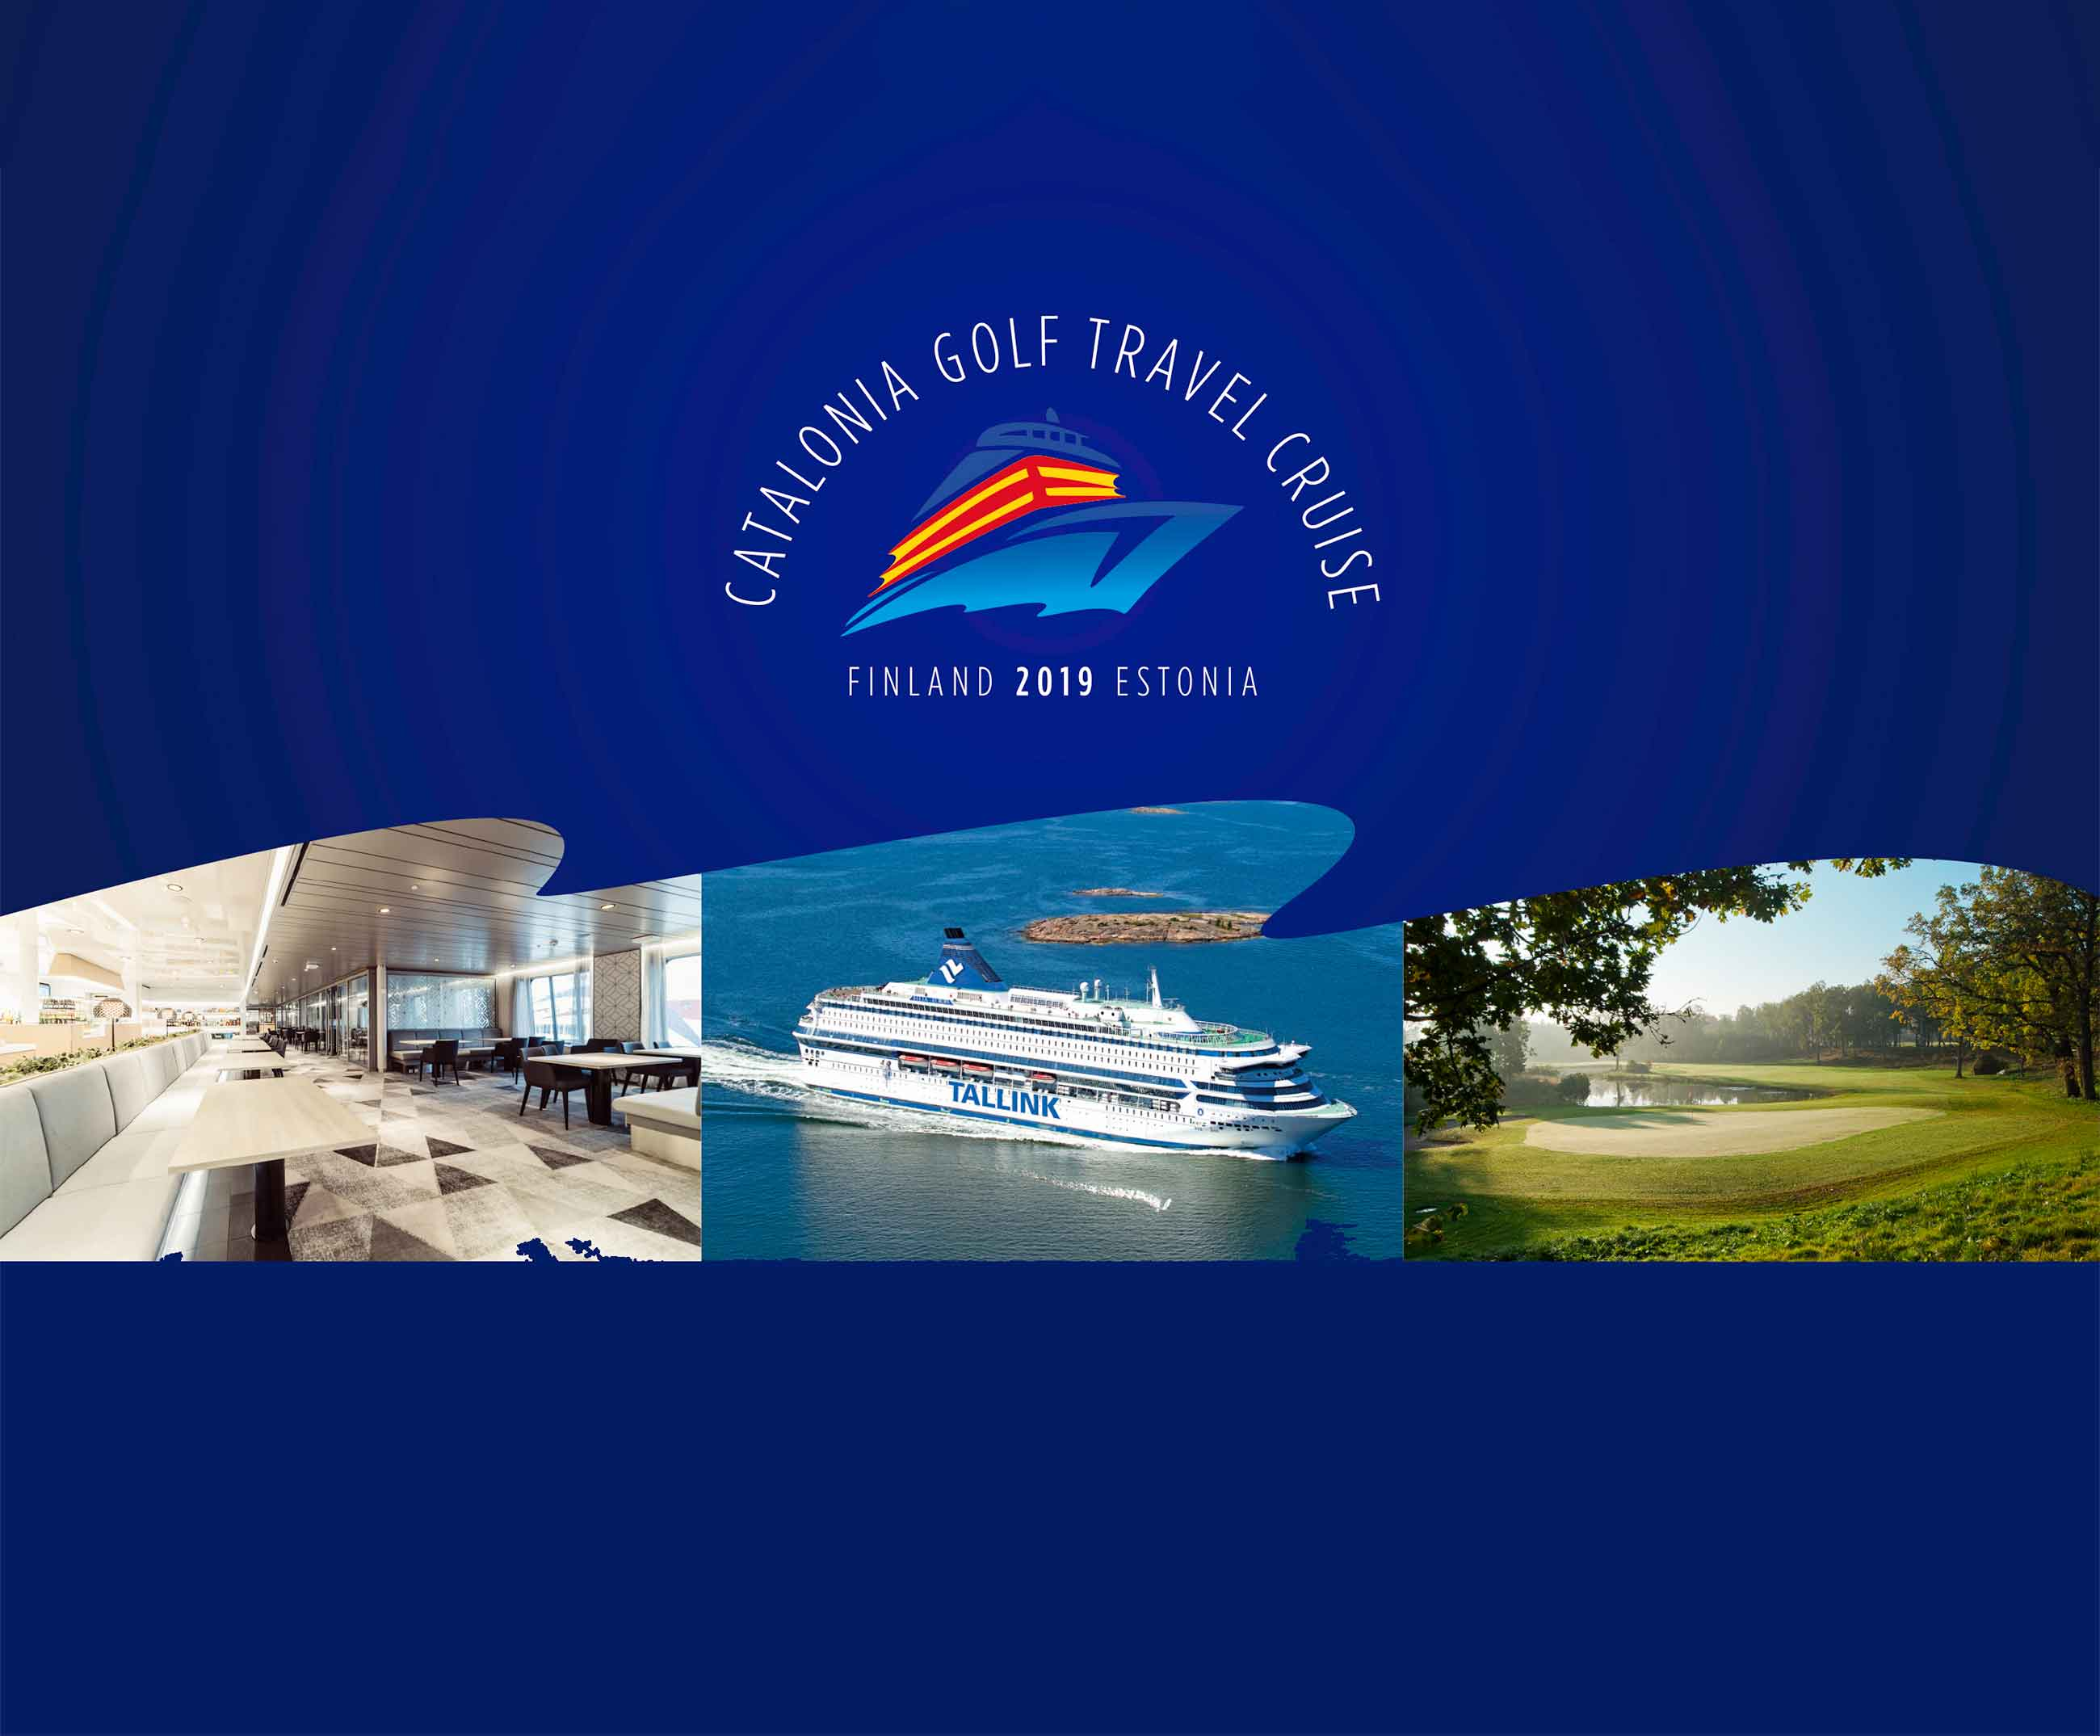 CATALONIA GOLF TRAVEL CRUISE